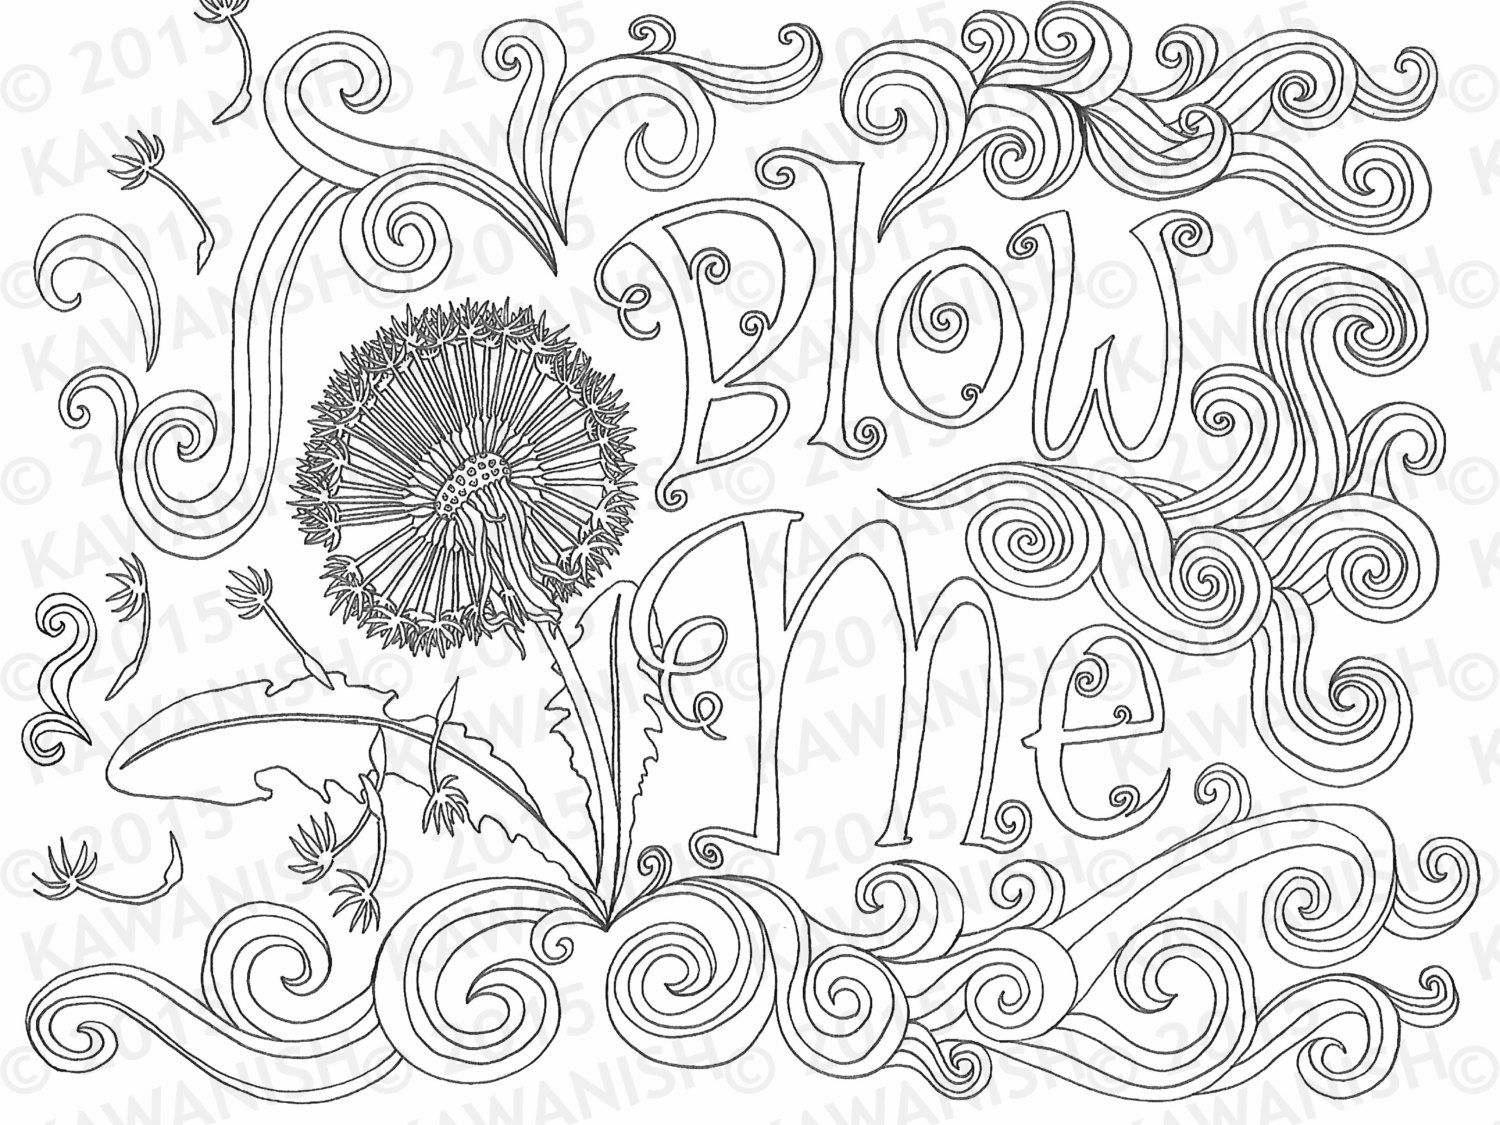 Swear word coloring book sarah bigwood - Blow Me Adult Coloring Page Dandelion Flower Gift Wall Art Funny Humor